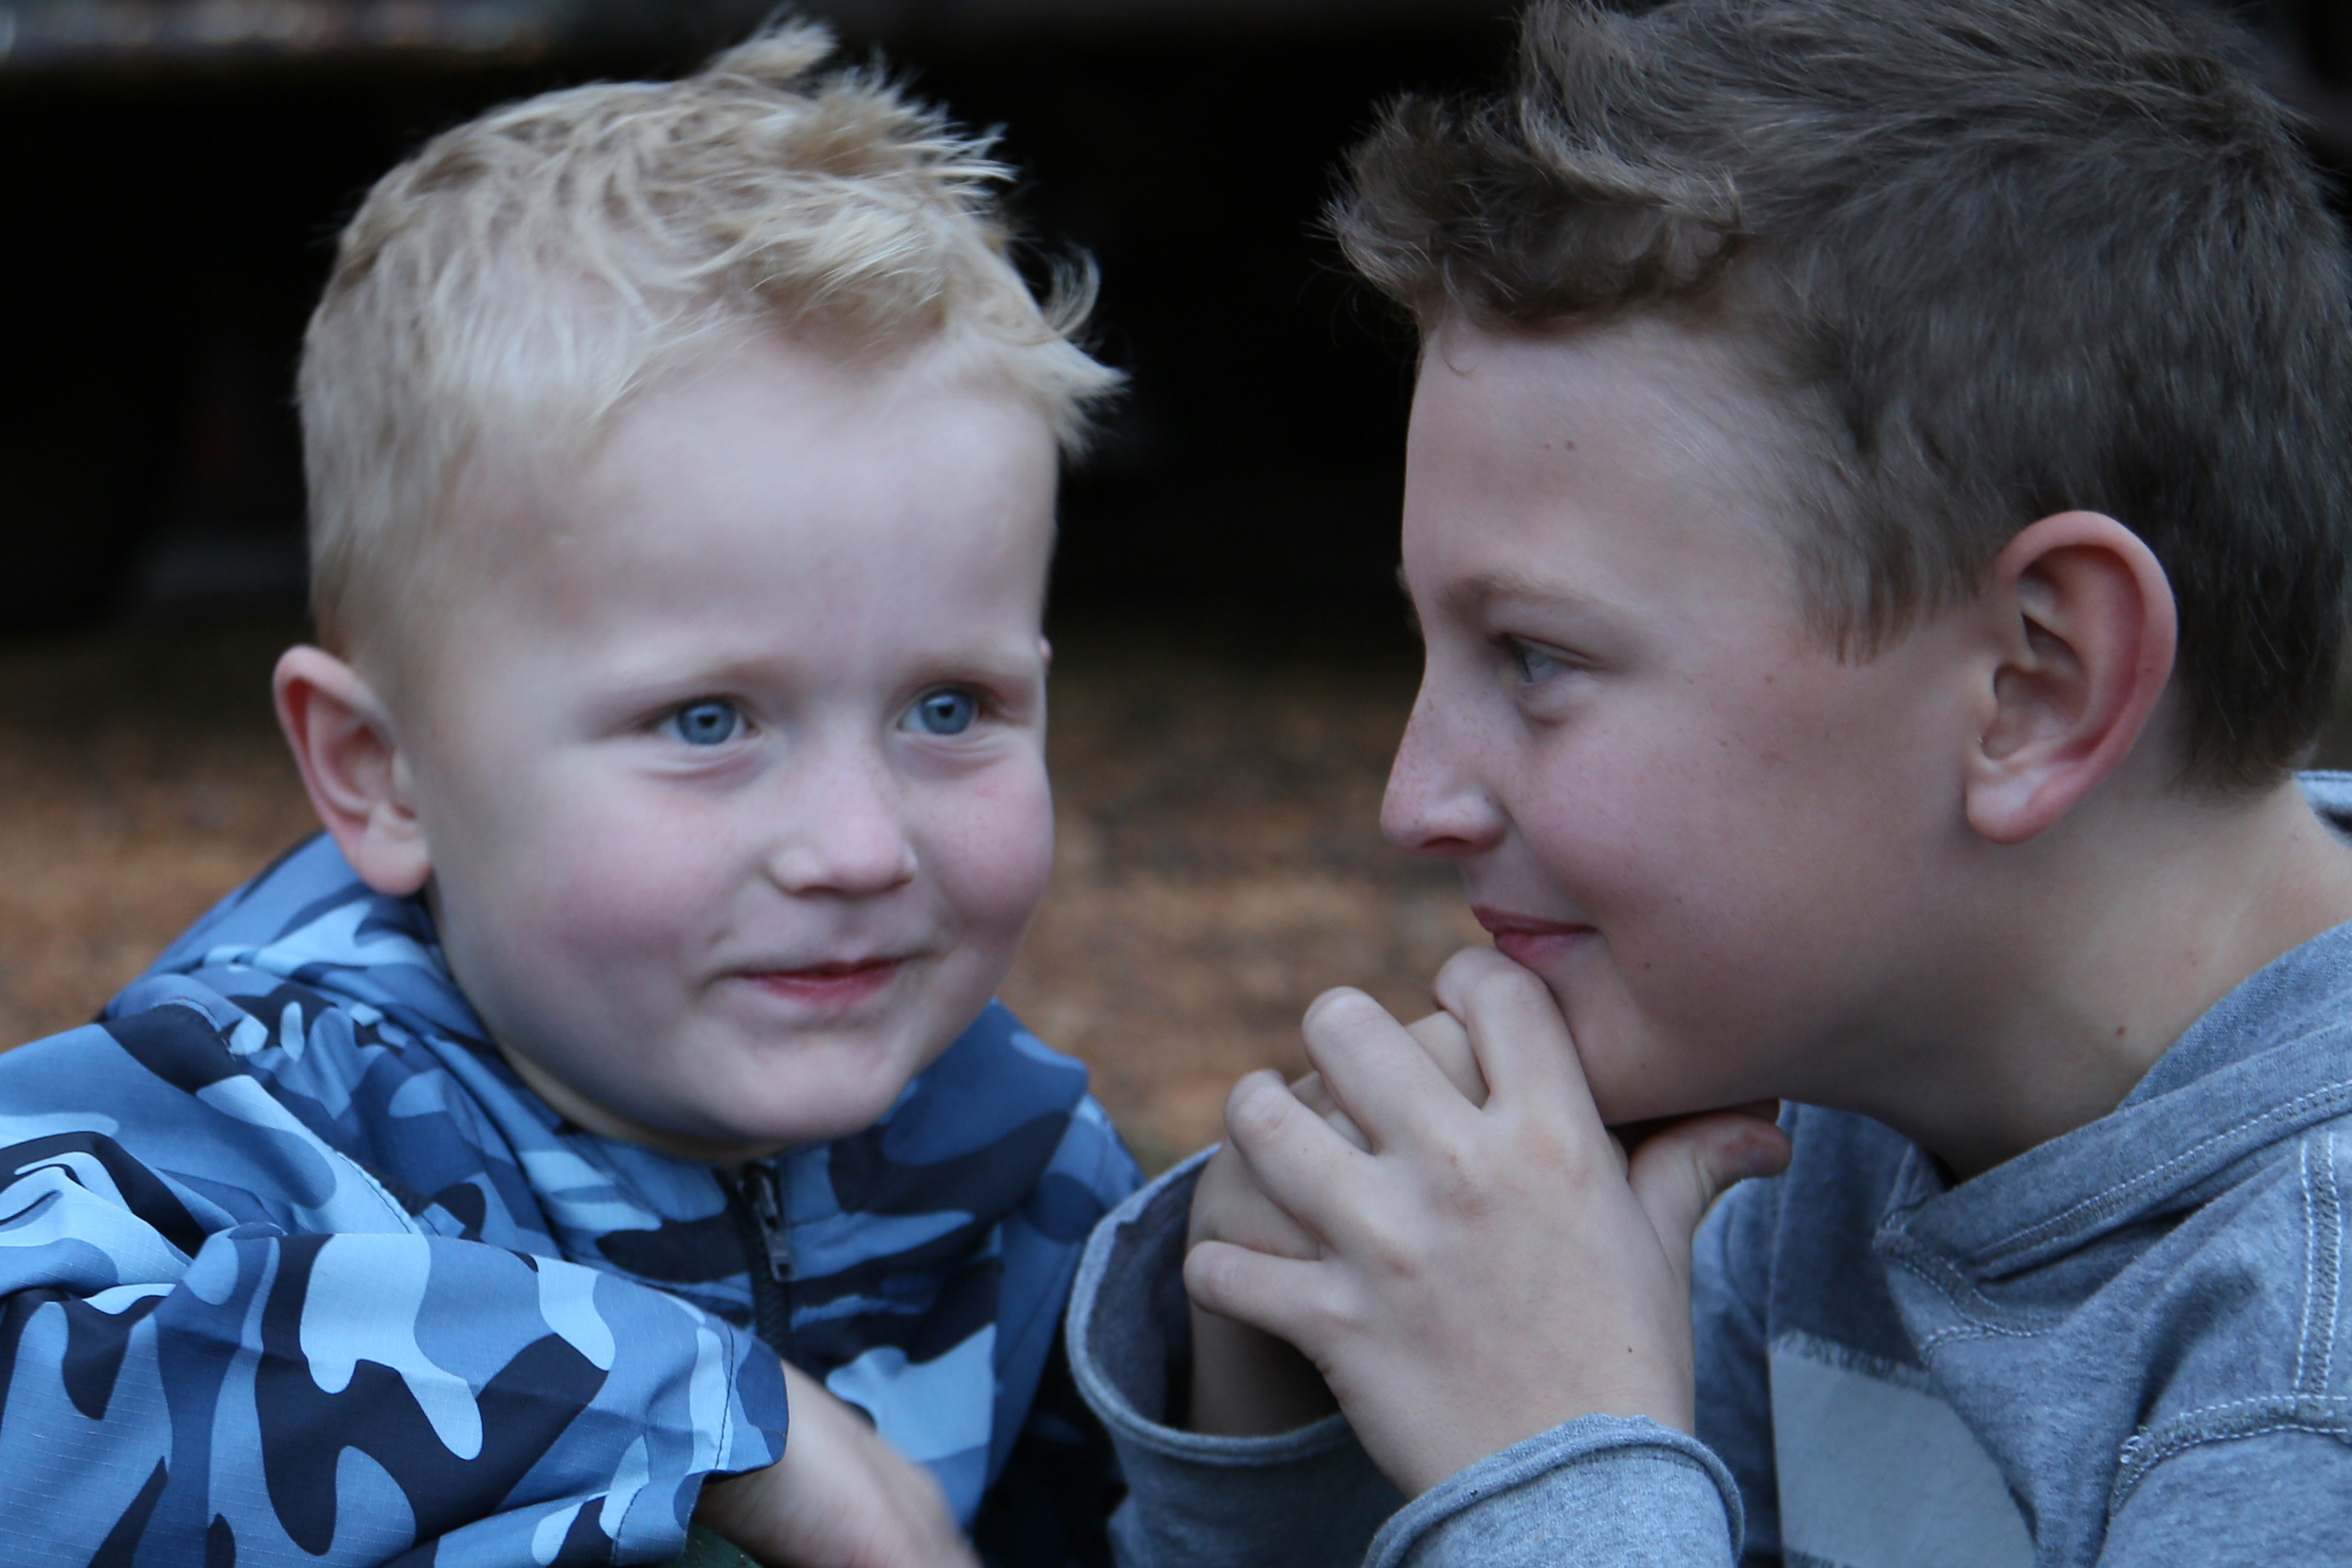 Two boys laughing